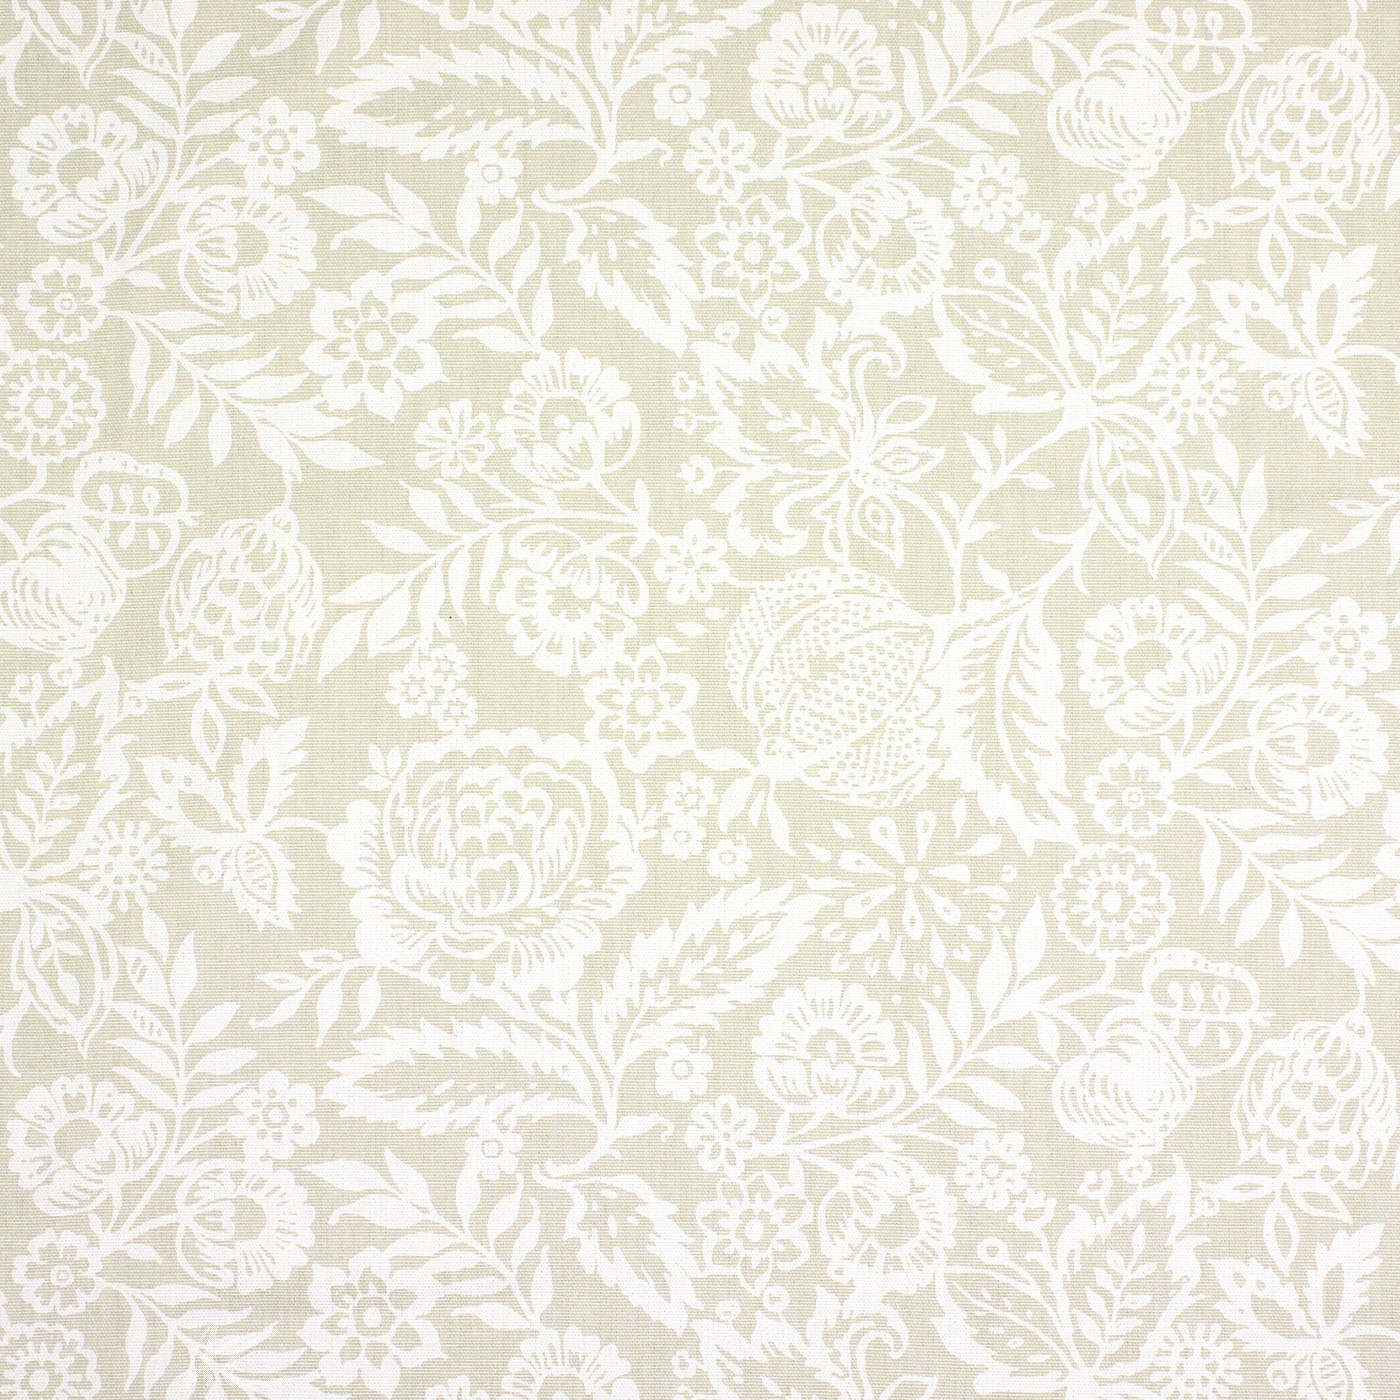 Clarke and Clarke Genevieve Polly Linen Curtain Fabric